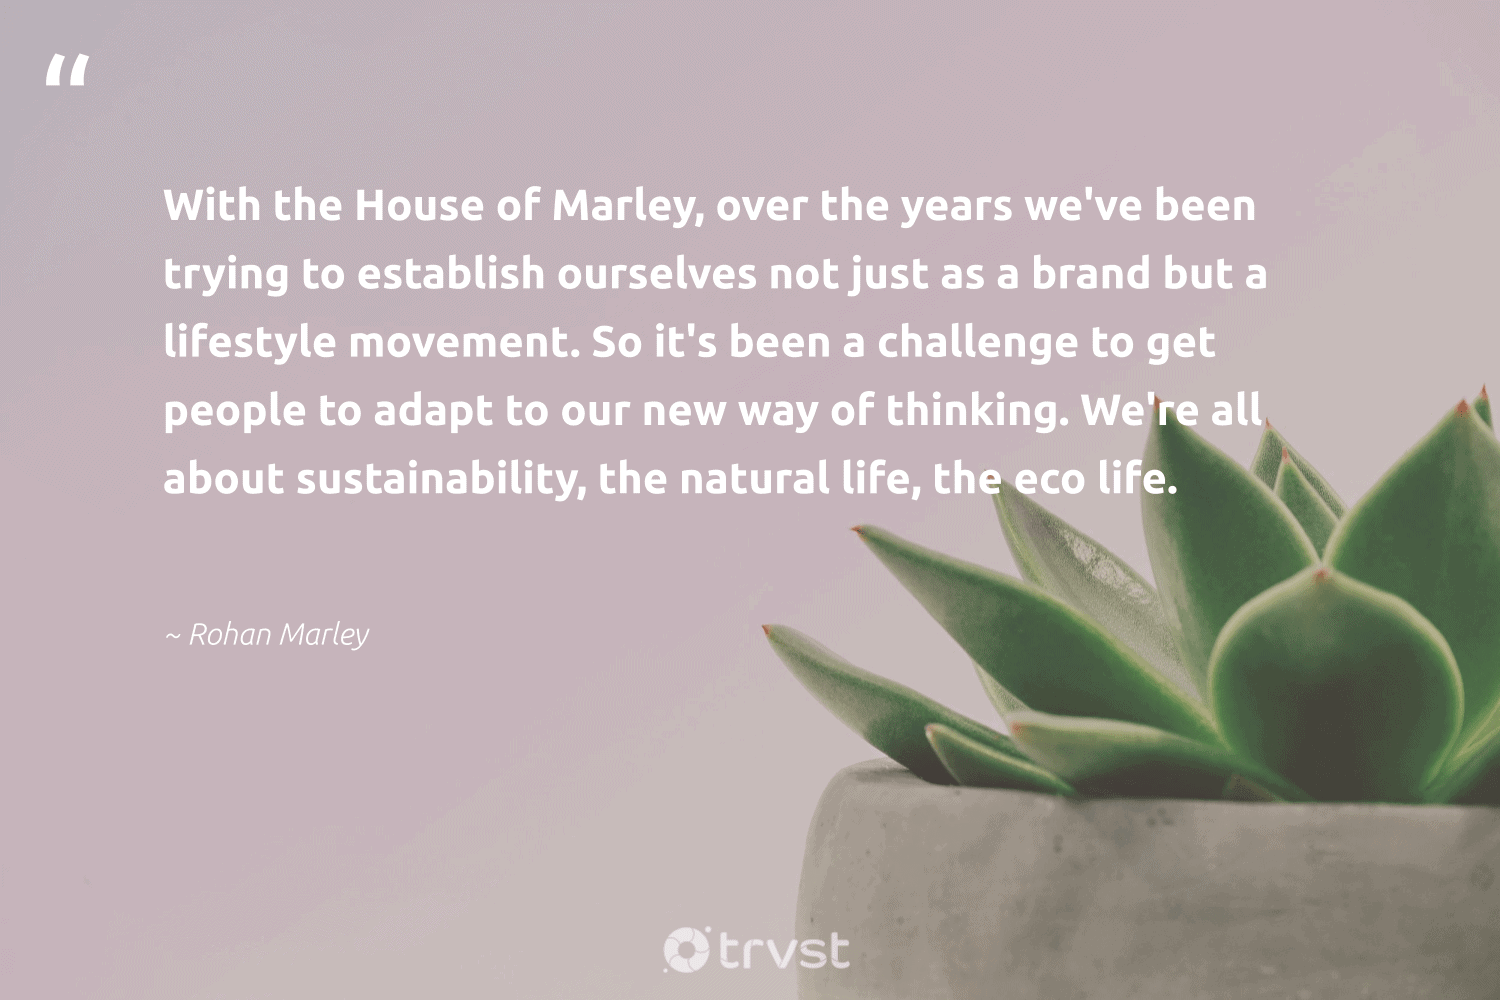 """""""With the House of Marley, over the years we've been trying to establish ourselves not just as a brand but a lifestyle movement. So it's been a challenge to get people to adapt to our new way of thinking. We're all about sustainability, the natural life, the eco life.""""  - Rohan Marley #trvst #quotes #sustainability #eco #natural #lifestyle #ecofriendly #fashion #bethechange #ecoconscious #sustainableliving #sustainable"""